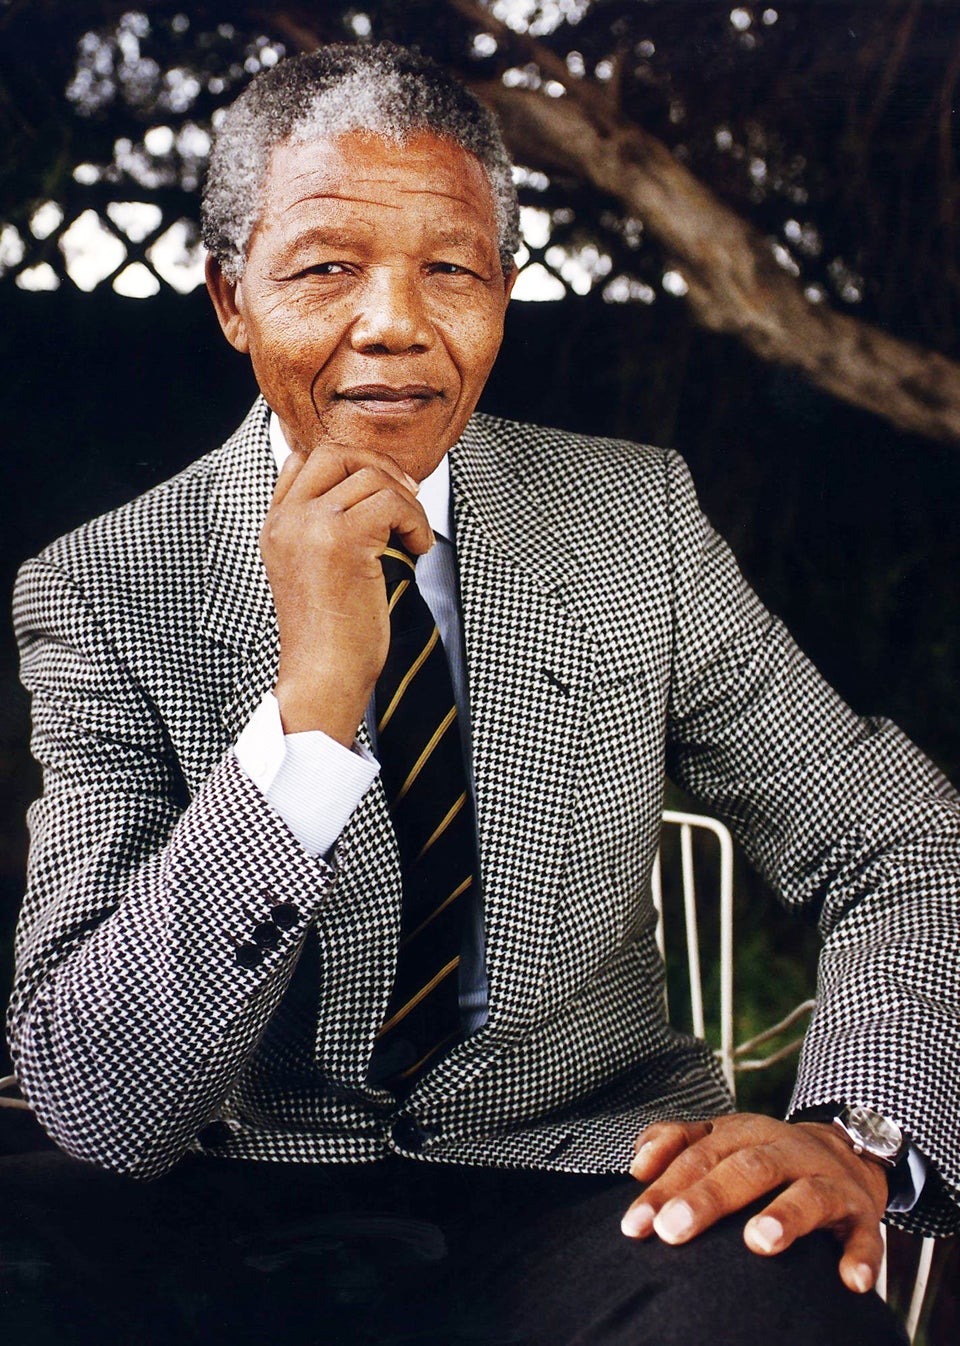 Nelson Mandela Fighting from 'Deathbed'